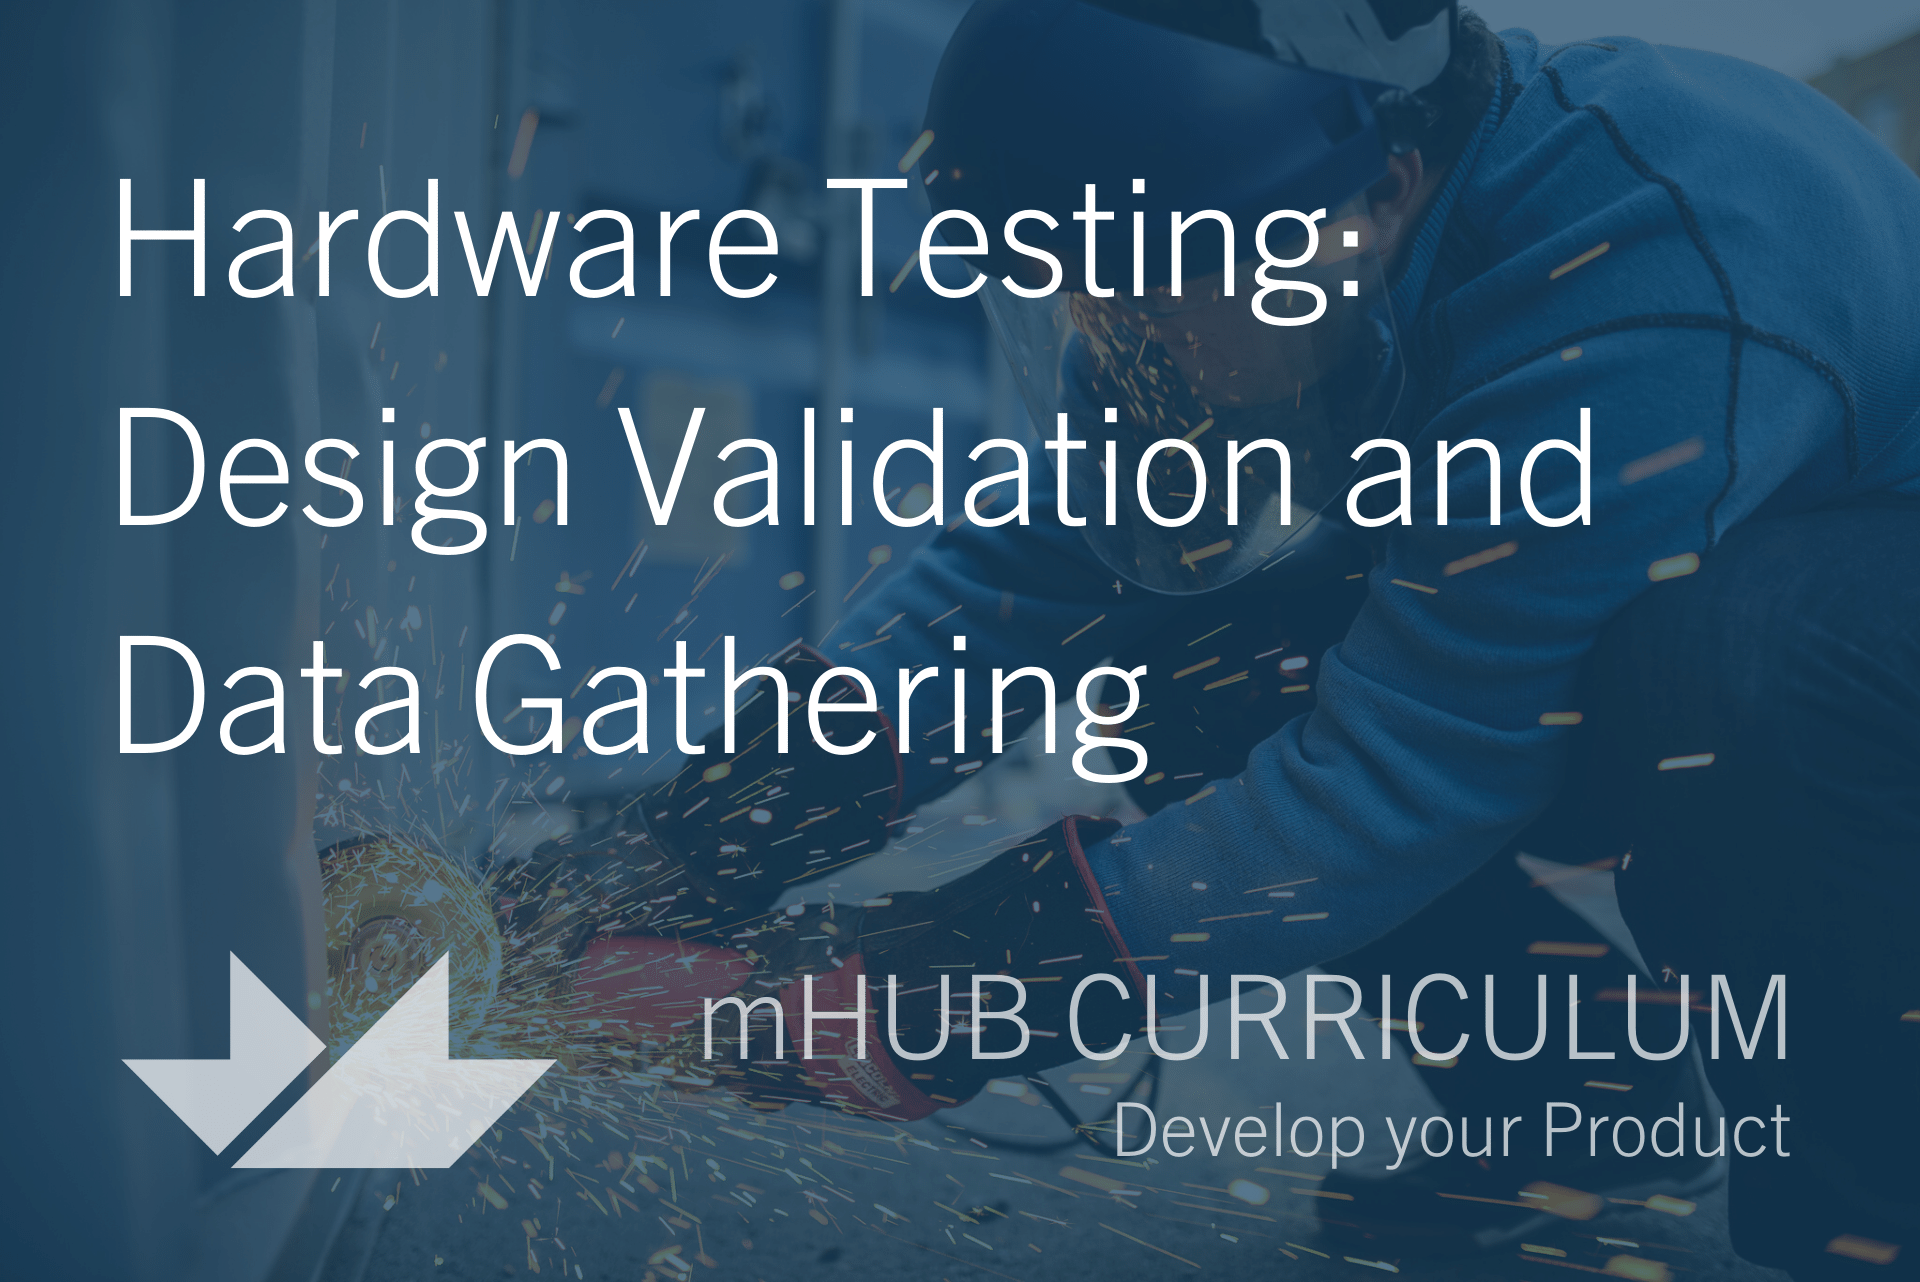 Hardware Testing: Design Validation and Data Gathering